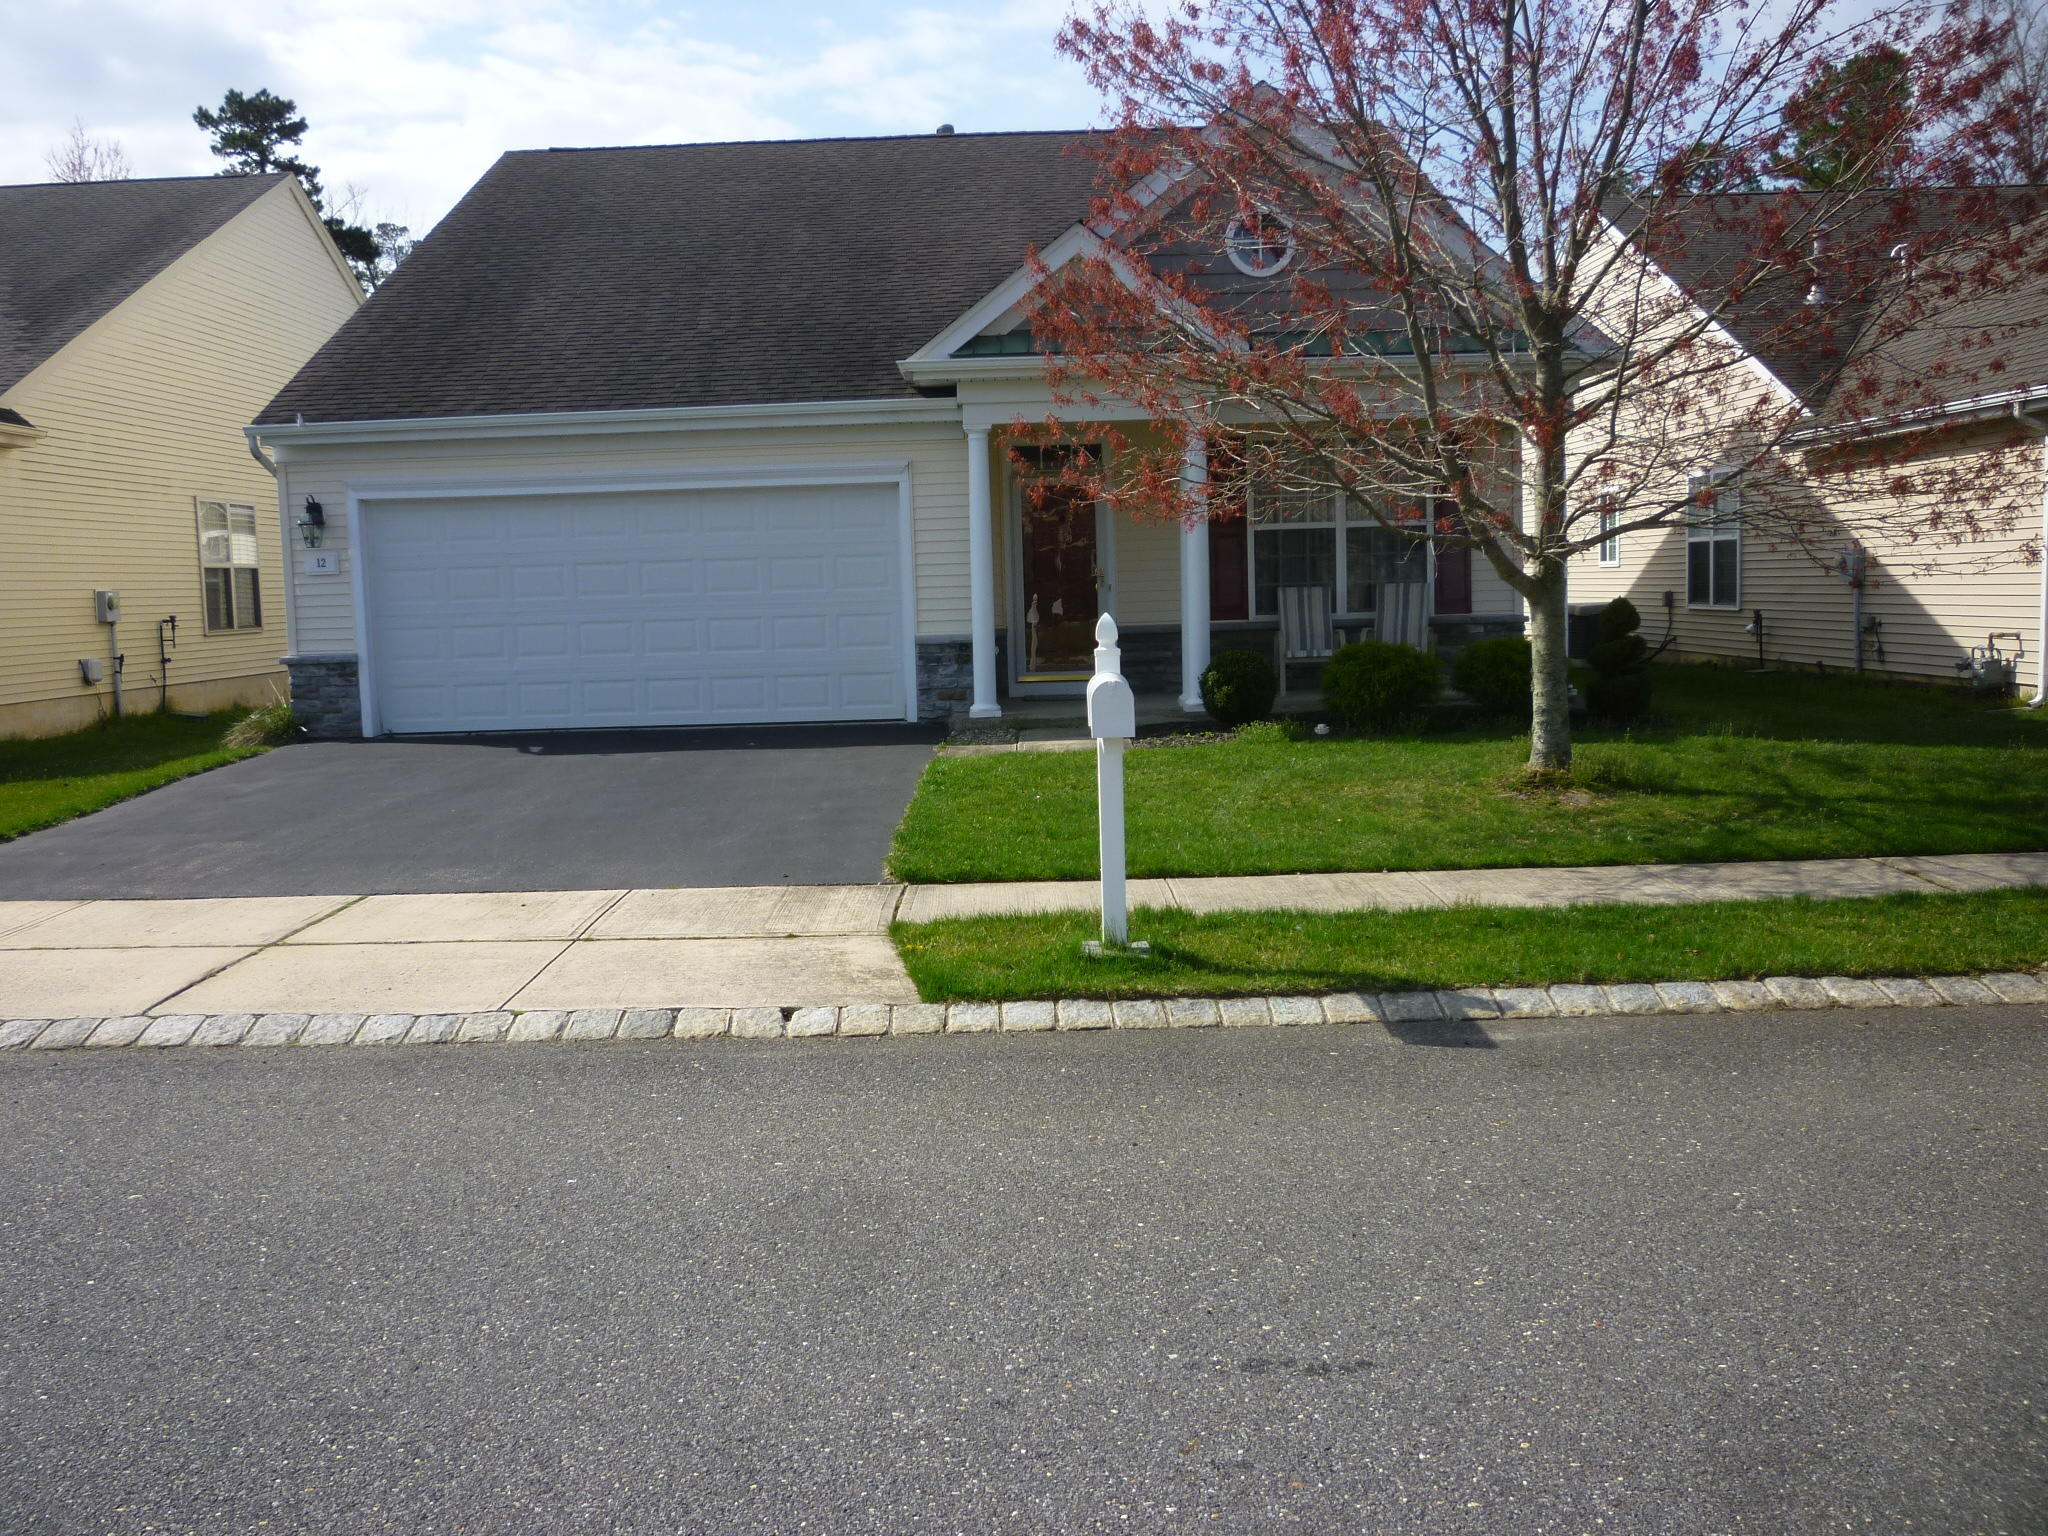 ESTATE SALE! Quick closing possible on this Newport Model. Open floor plan, with newer laminate flooring. Family room and a living room with a dining area. Center island eat-in kitchen, with stainless steel appliances. Hot water heater replaced in 2017. New furnace as of 12-14-2020. Master bedroom with plenty of closet space, double vanity sinks, ceramic floor, linen closet, separate shower stall and tub.  Guest bedroom, with full bathroom in hallway.  Nice open front porch and a backyard patio. All appliances are included.  All remaining personal items will be cleared out of the home on April 24, 2021.